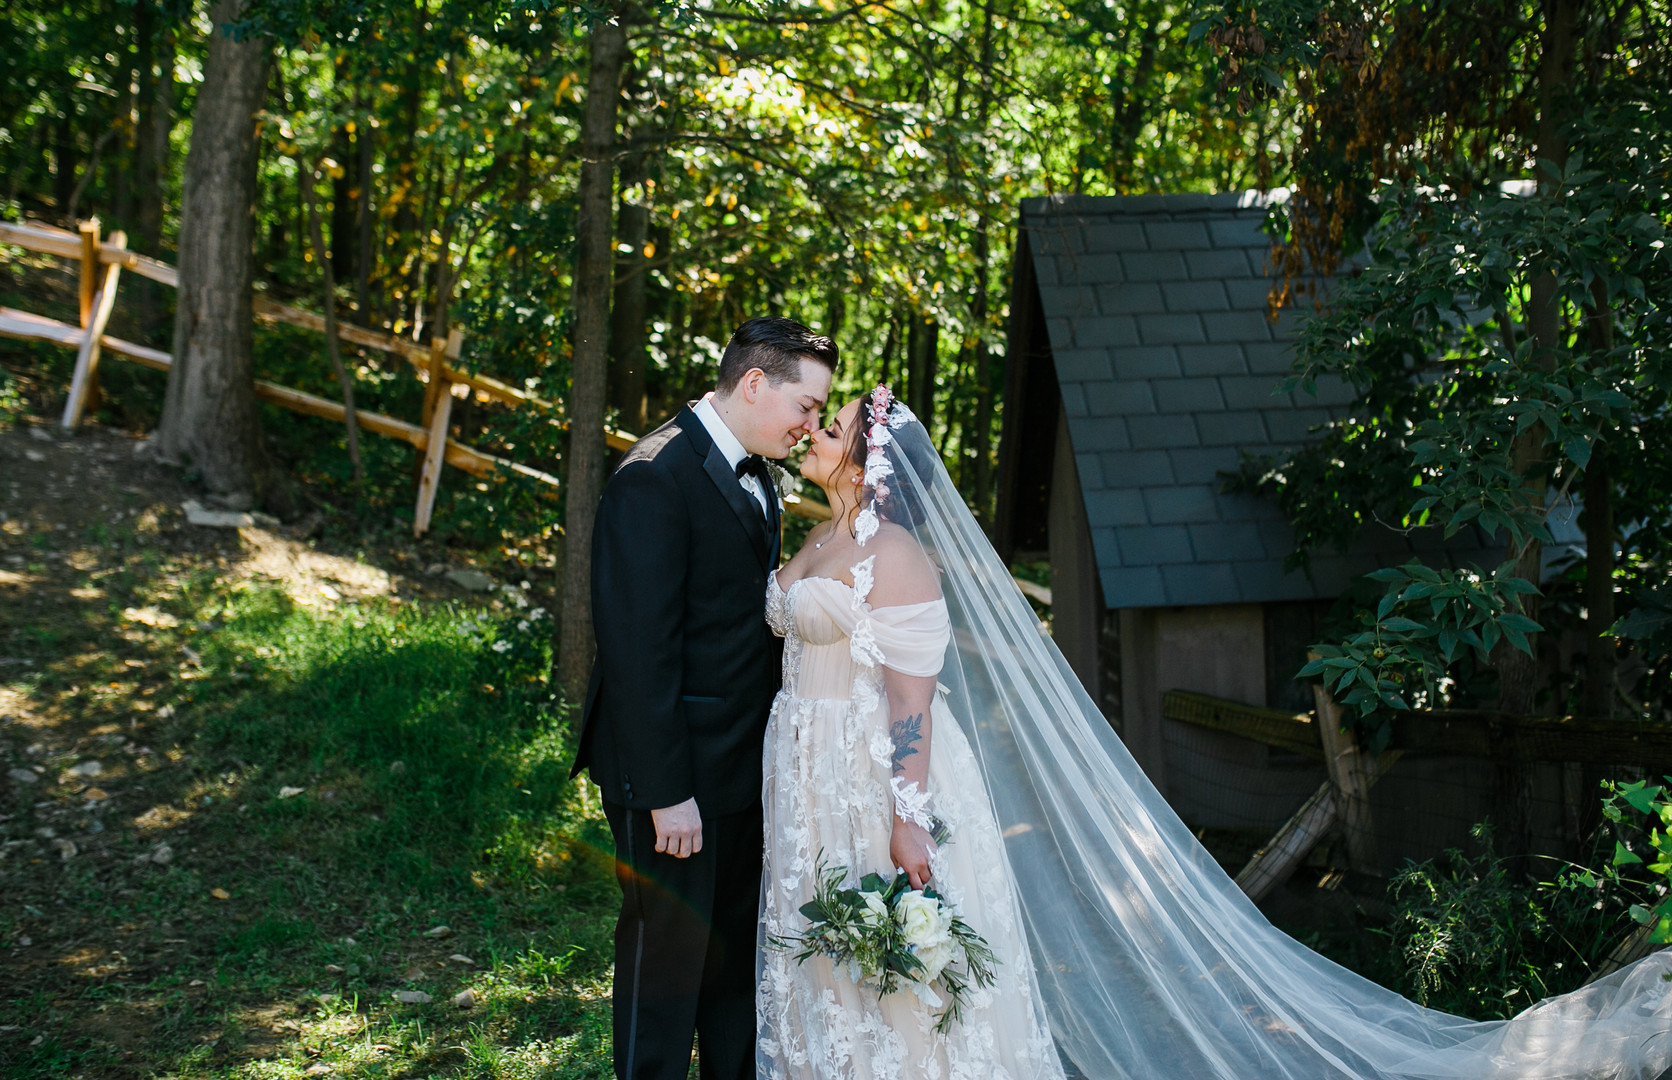 Lobdell Wedding 2018 Sweet Alice Photogr